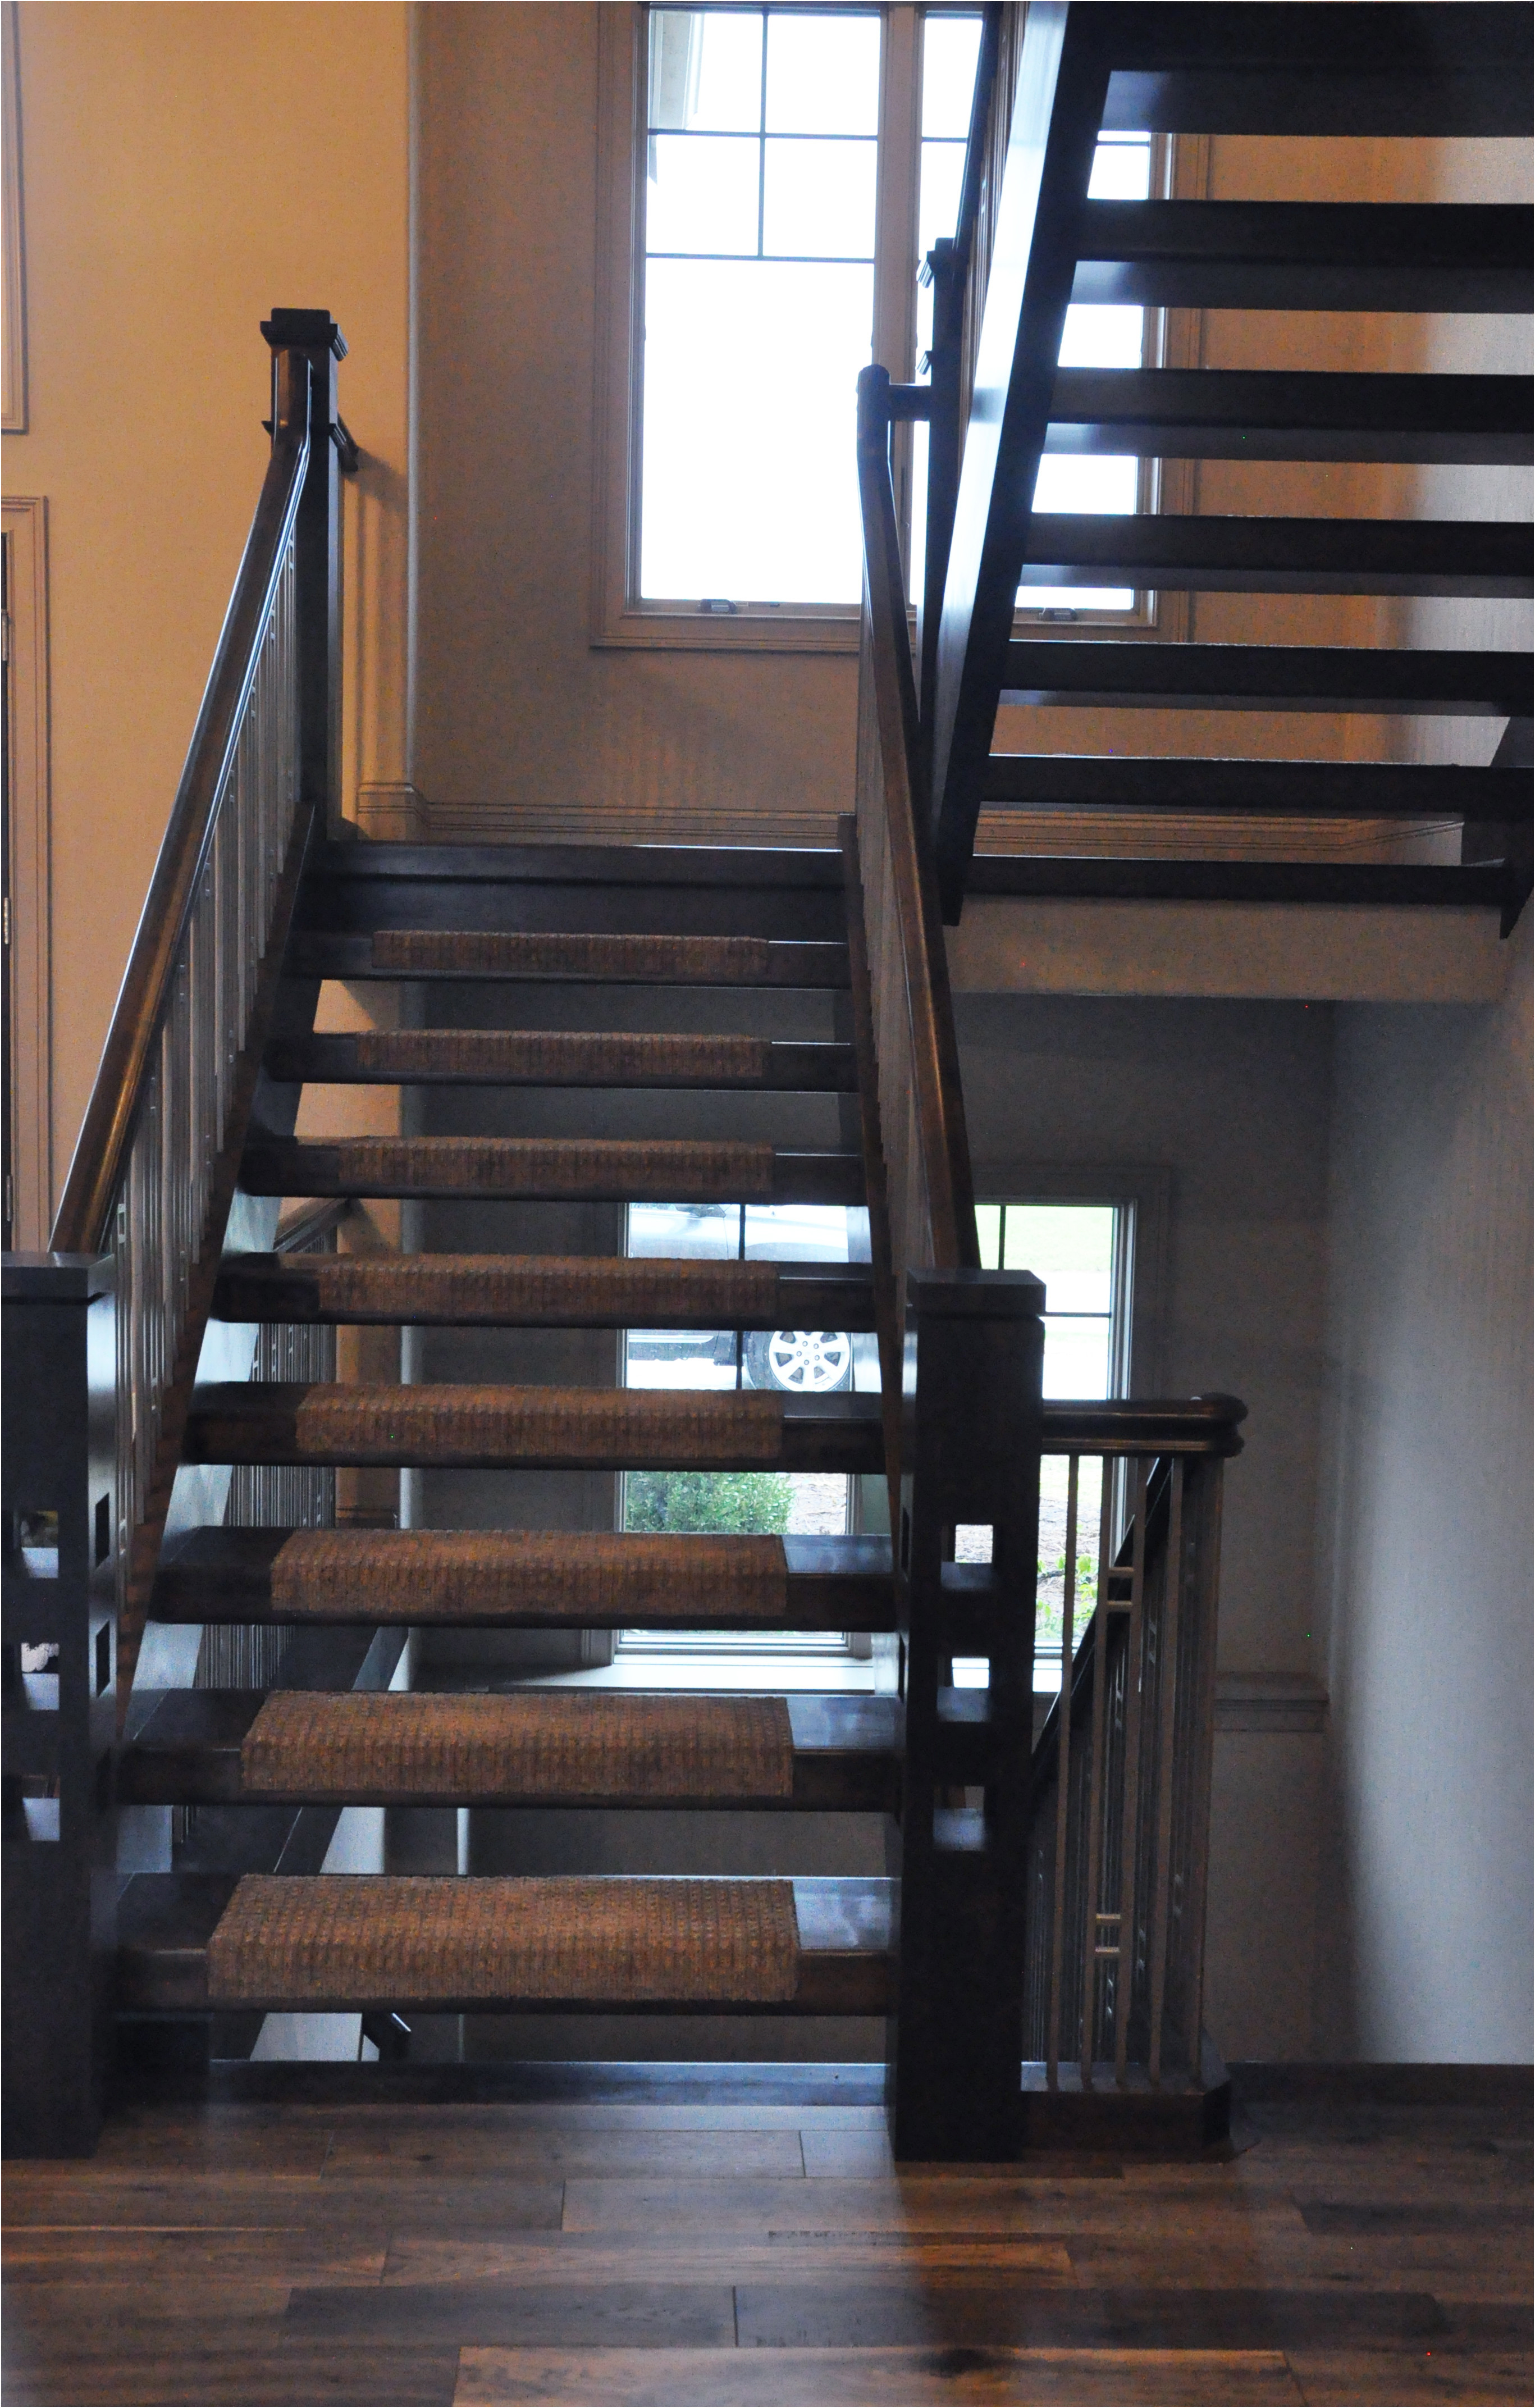 hardwood floor refinishing michigan of 15 superb how to put hardwood on stairs interior stairs within how to put hardwood on stairs beautiful hardwood stair treads staircasing installation milwaukee wi